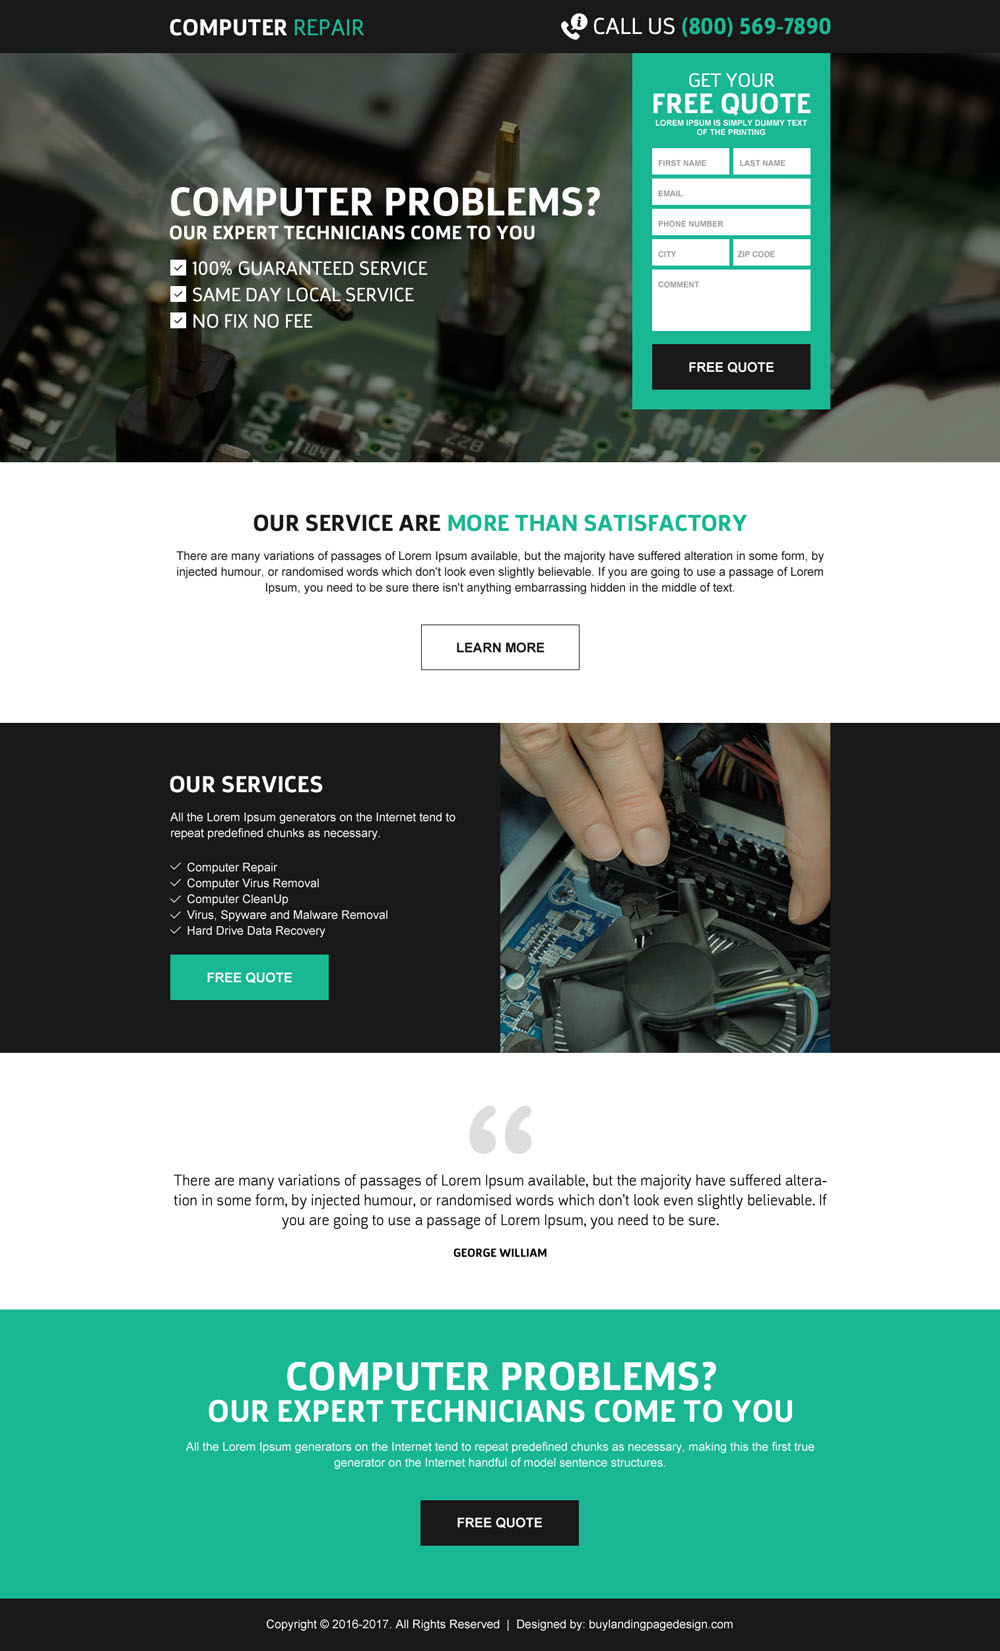 lead capture page templates free - responsive computer repair landing page design templates